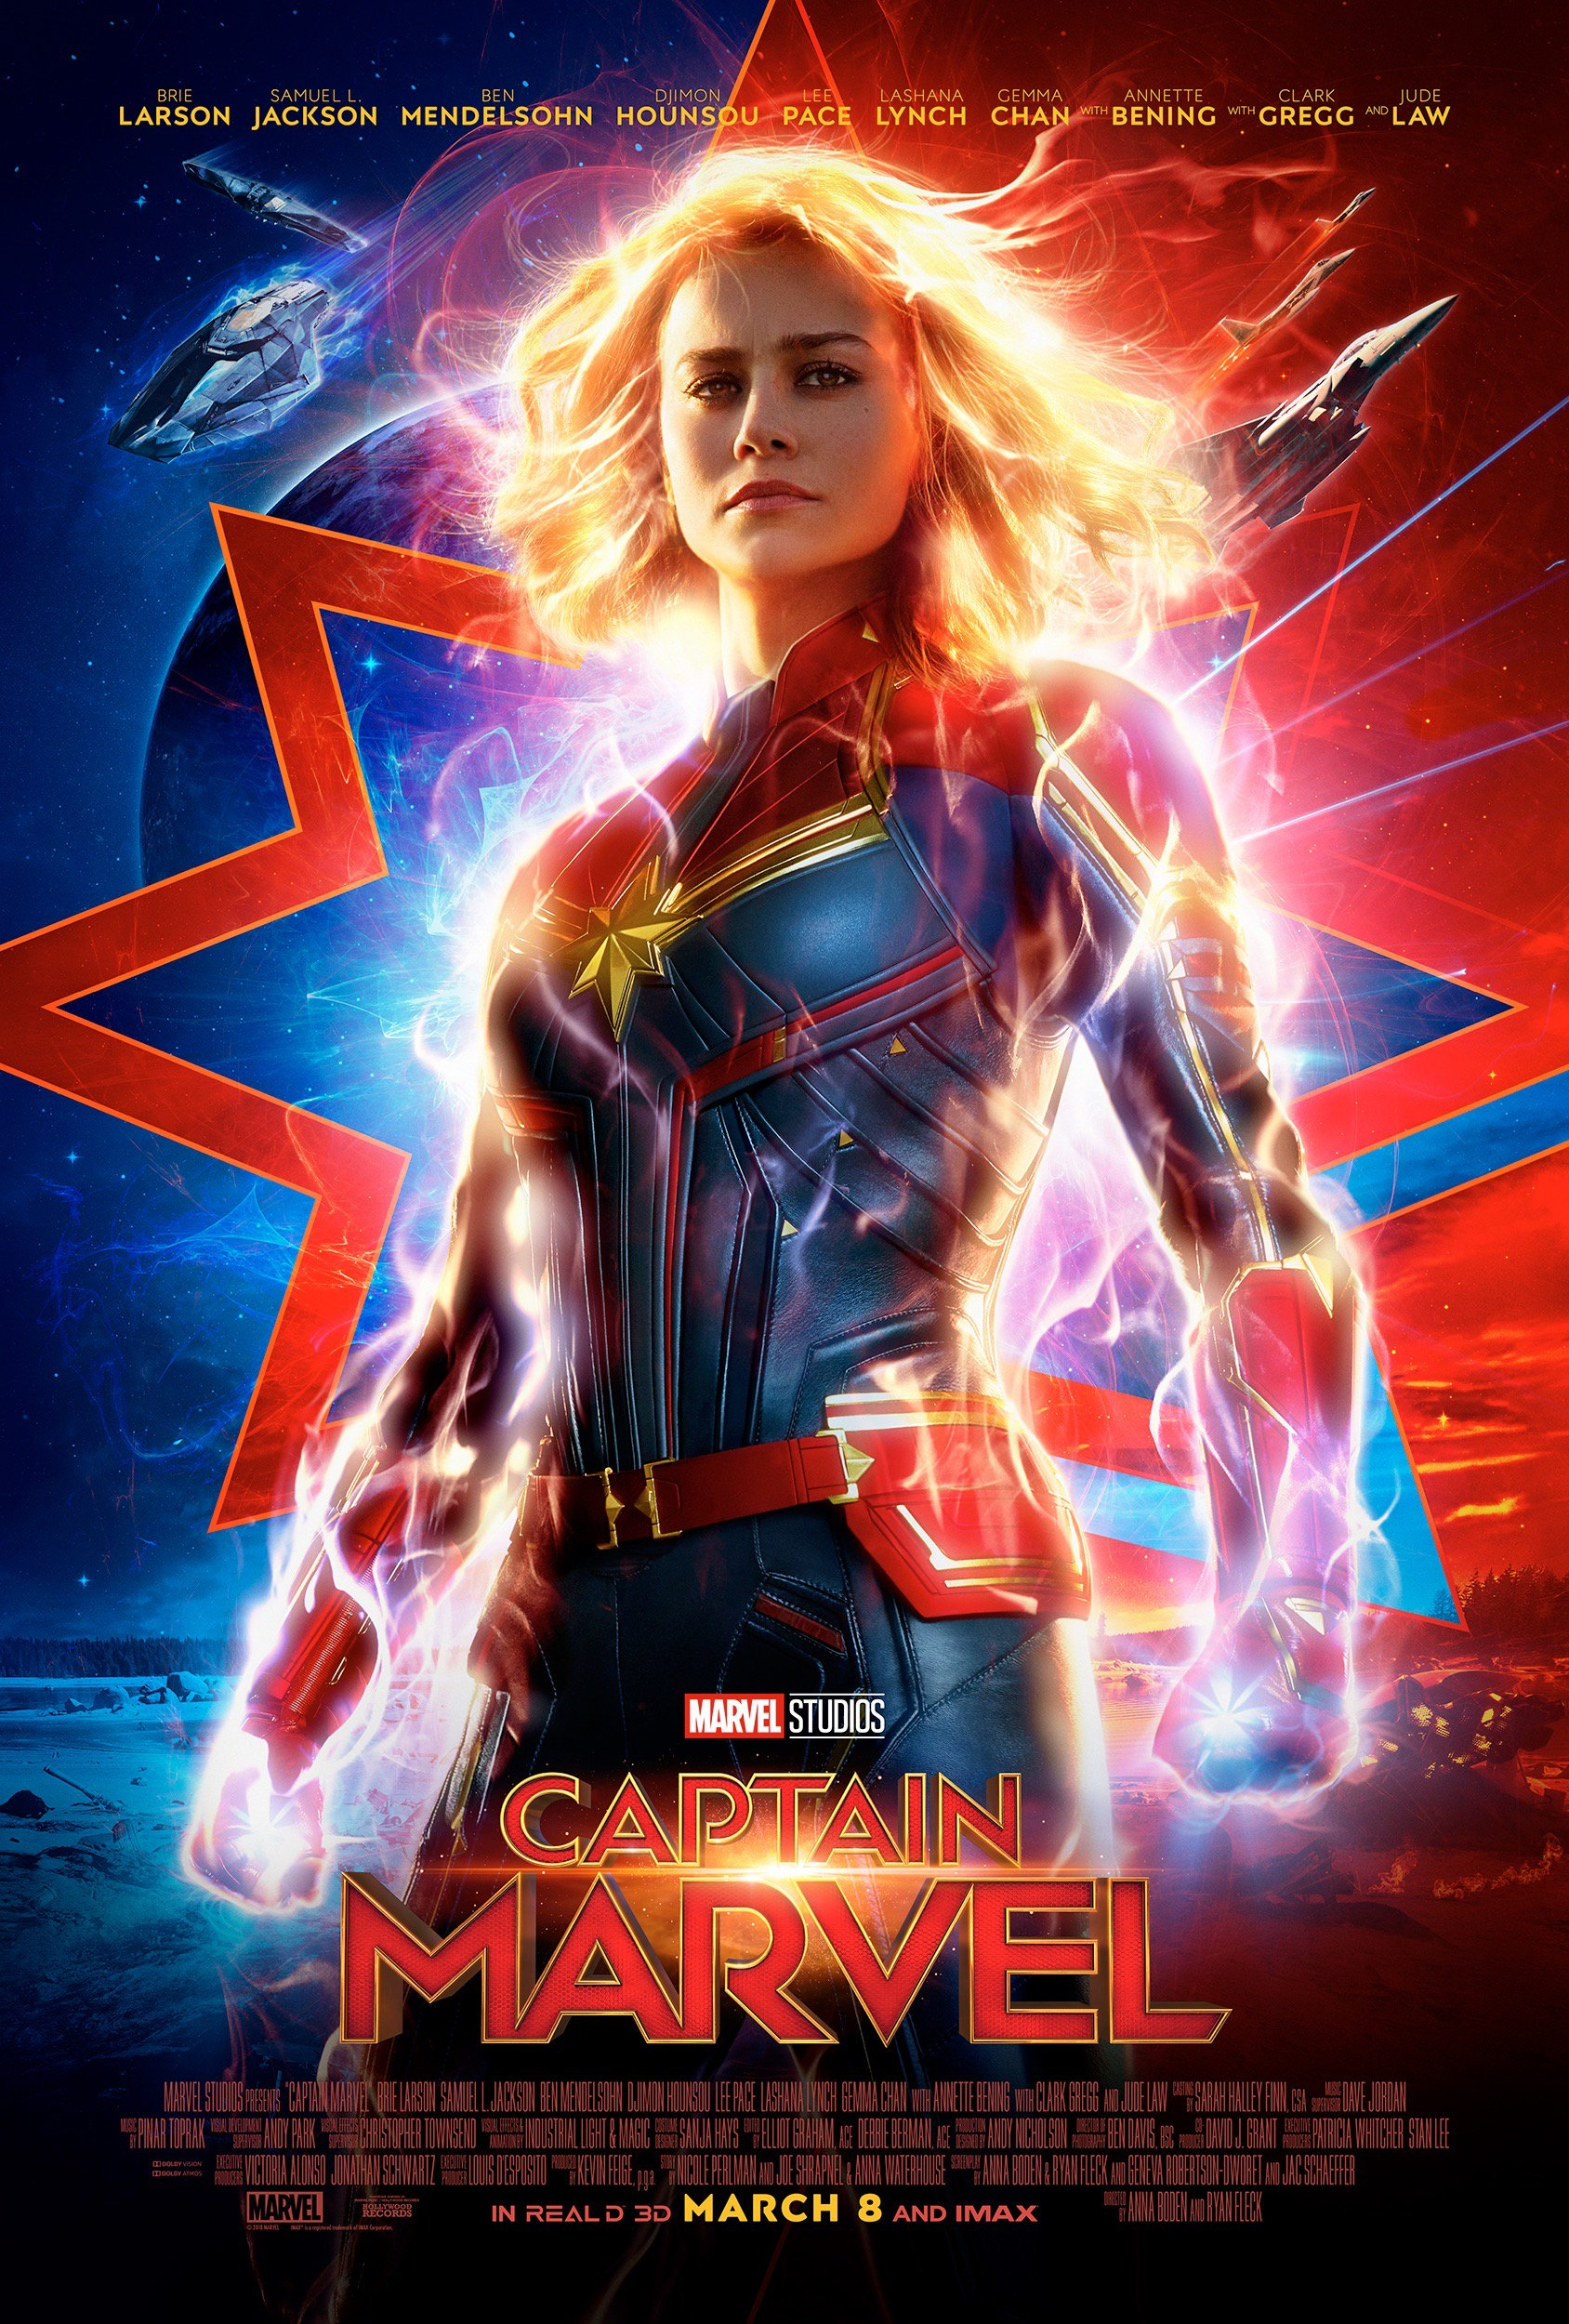 captain marvel 3d movie poster.jpeg